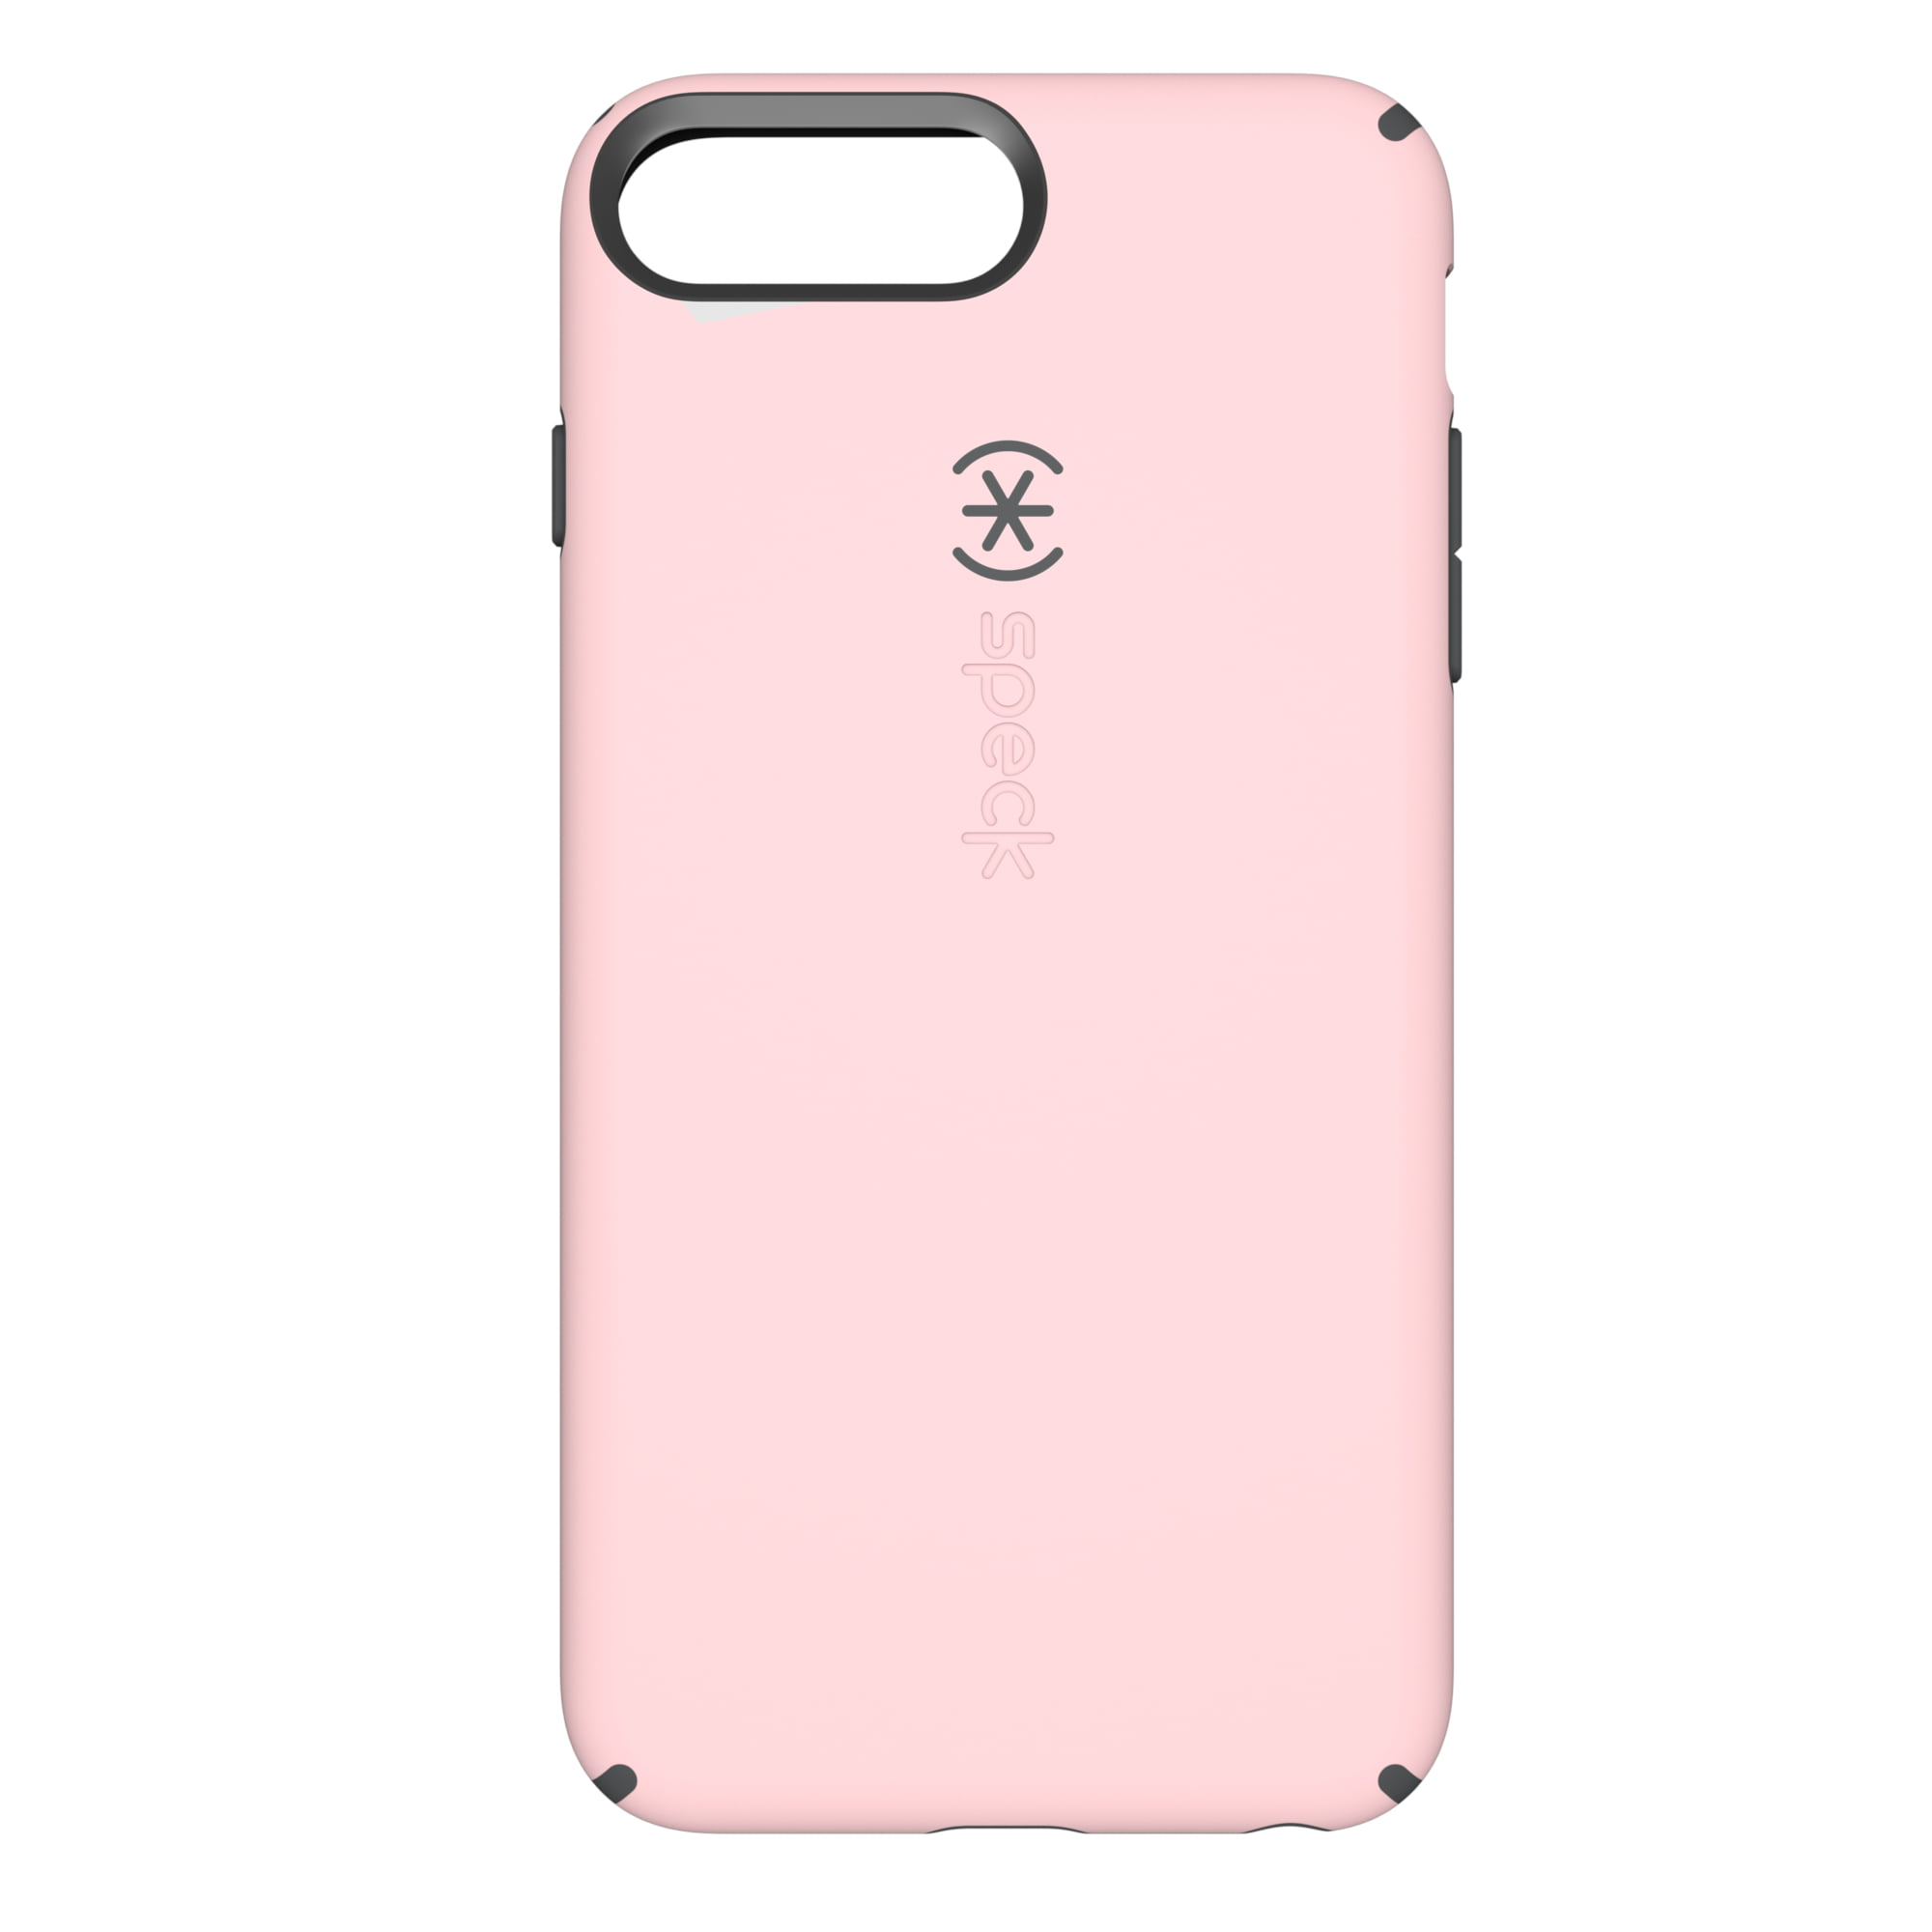 meet 78e05 cde7d Speck CandyShell Grip Case for iPhone 8 Plus, 7 Plus, 6s Plus, and 6 Plus,  Grey and Blue